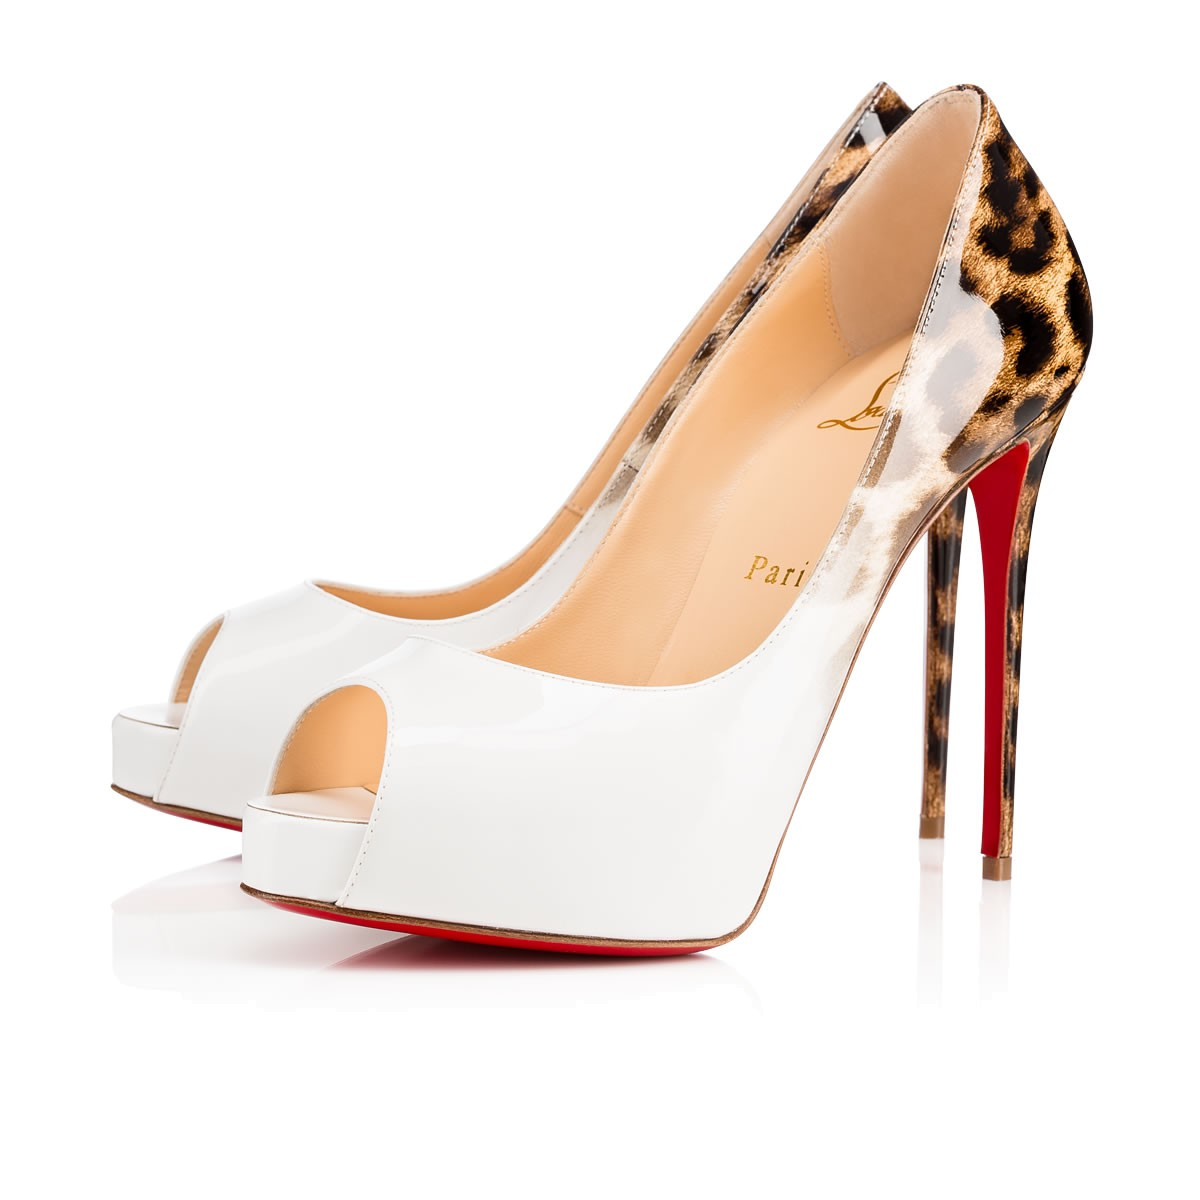 c4129180973 Christian Louboutin New Very Prive In Latte-Leopard | ModeSens